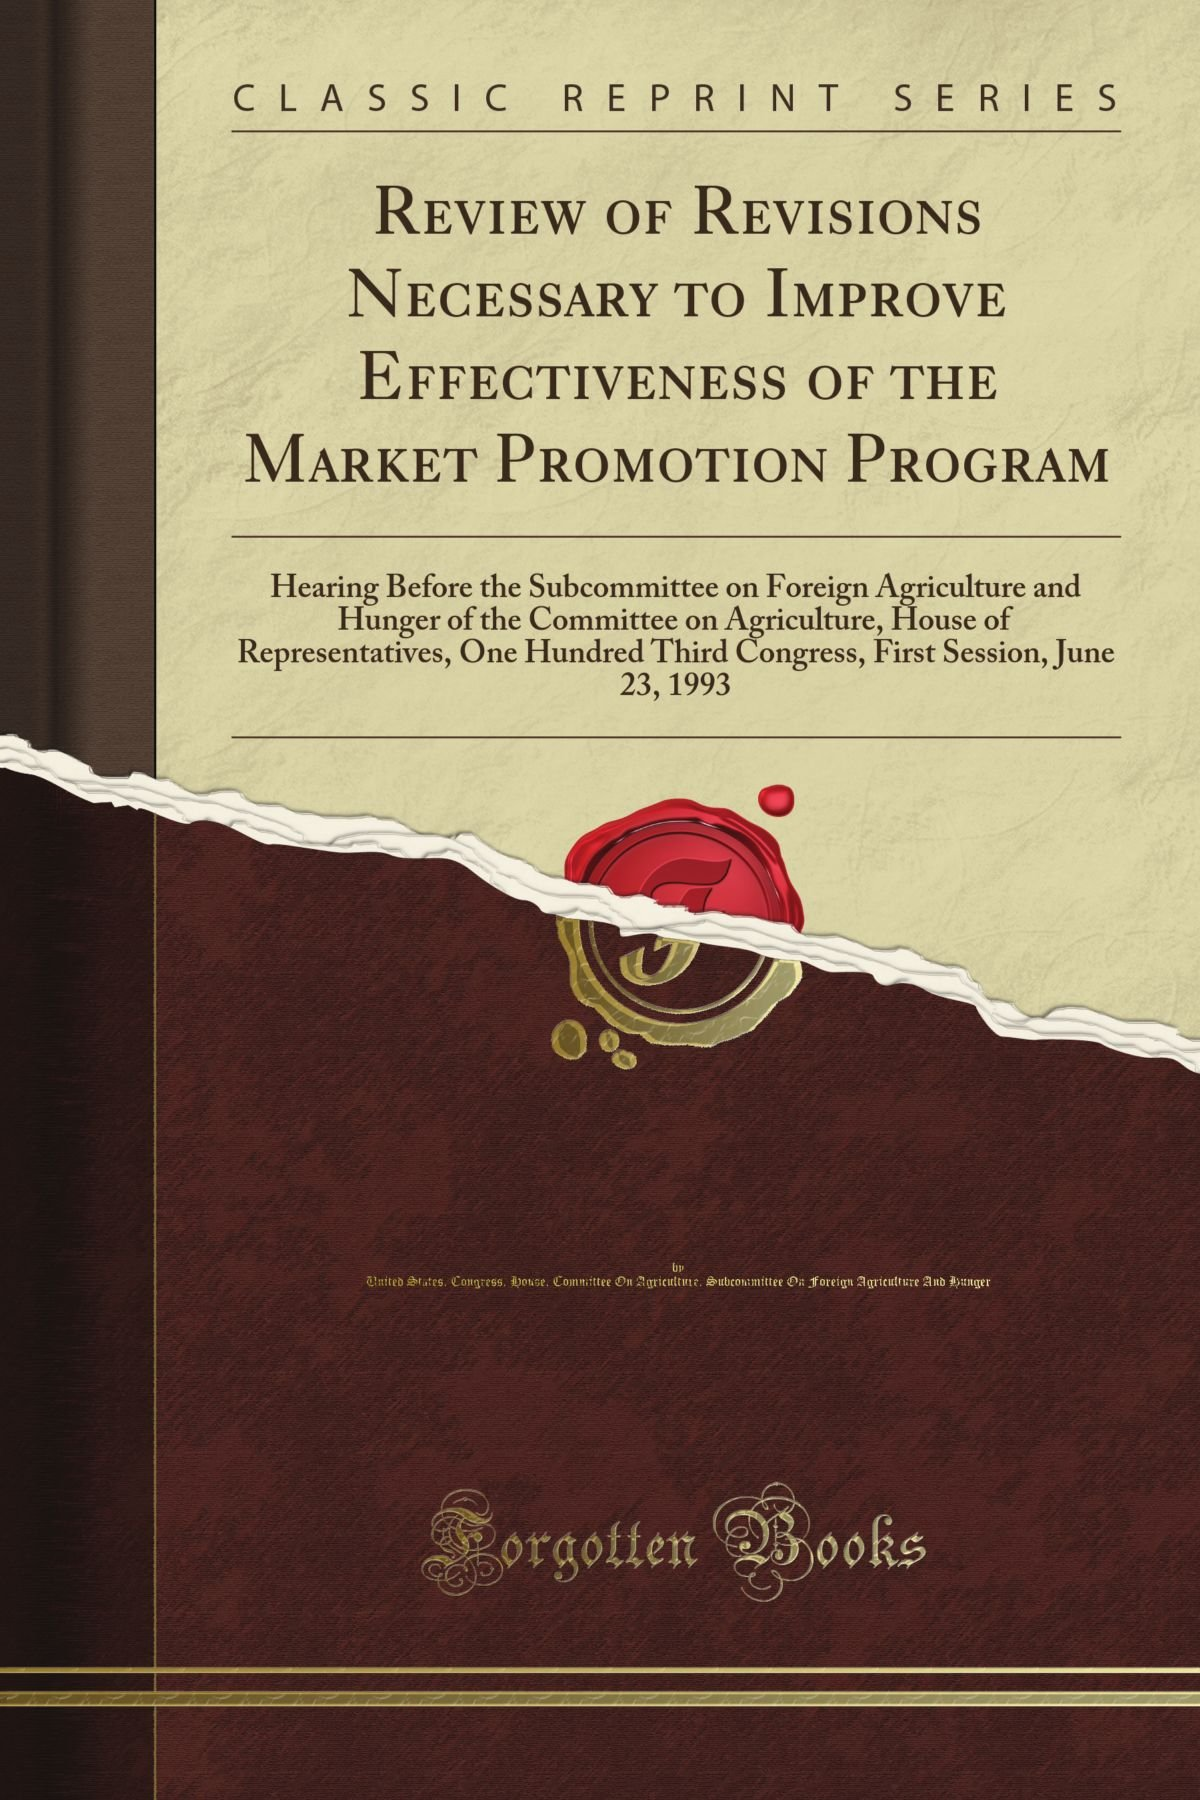 Review of Revisions Necessary to Improve Effectiveness of the Market Promotion Program (Classic Reprint) ebook